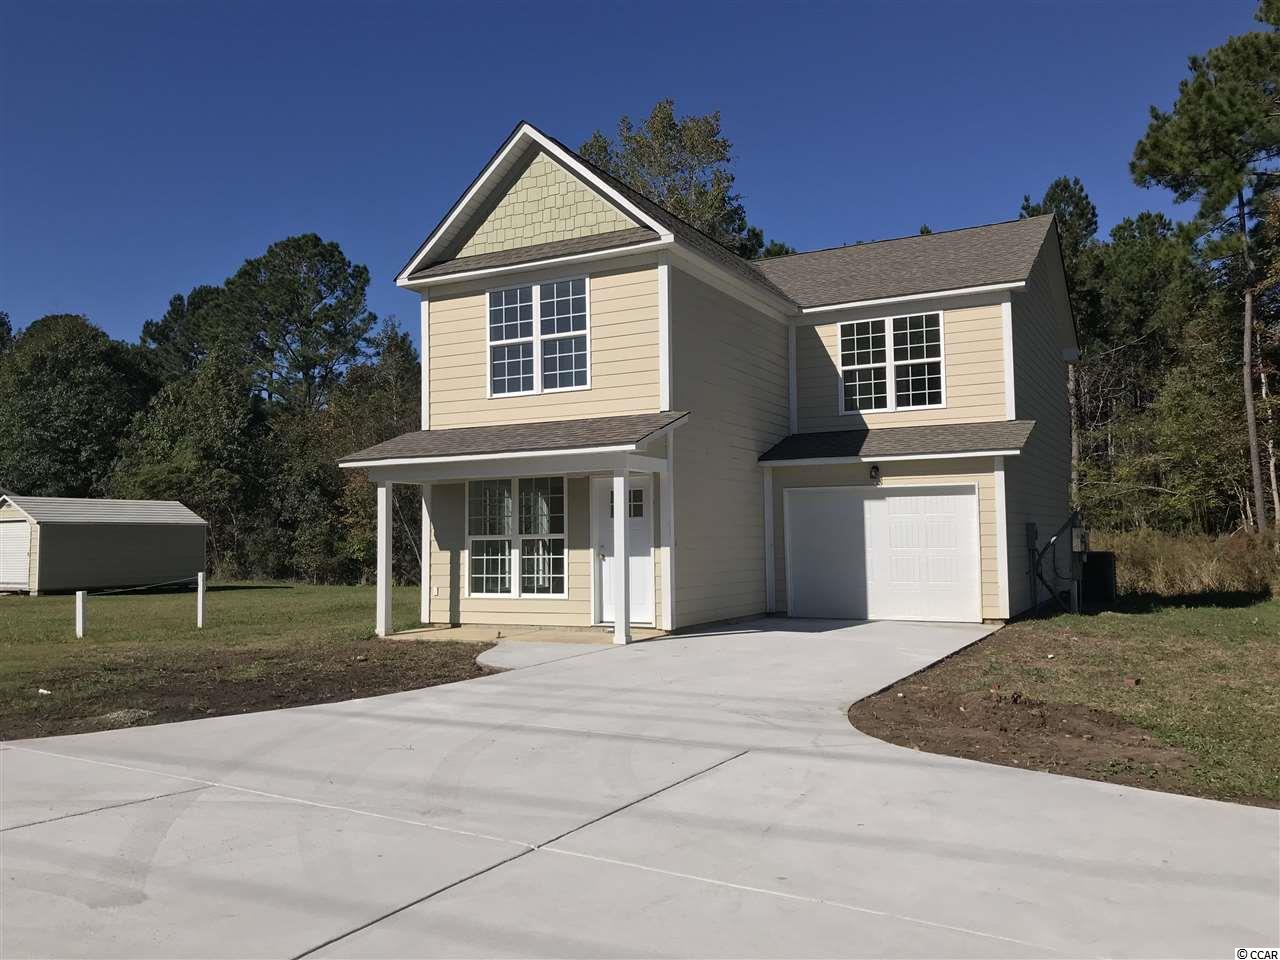 Single Family Home for Sale at 1041 N Hwy 57 1041 N Hwy 57 Little River, South Carolina 29566 United States